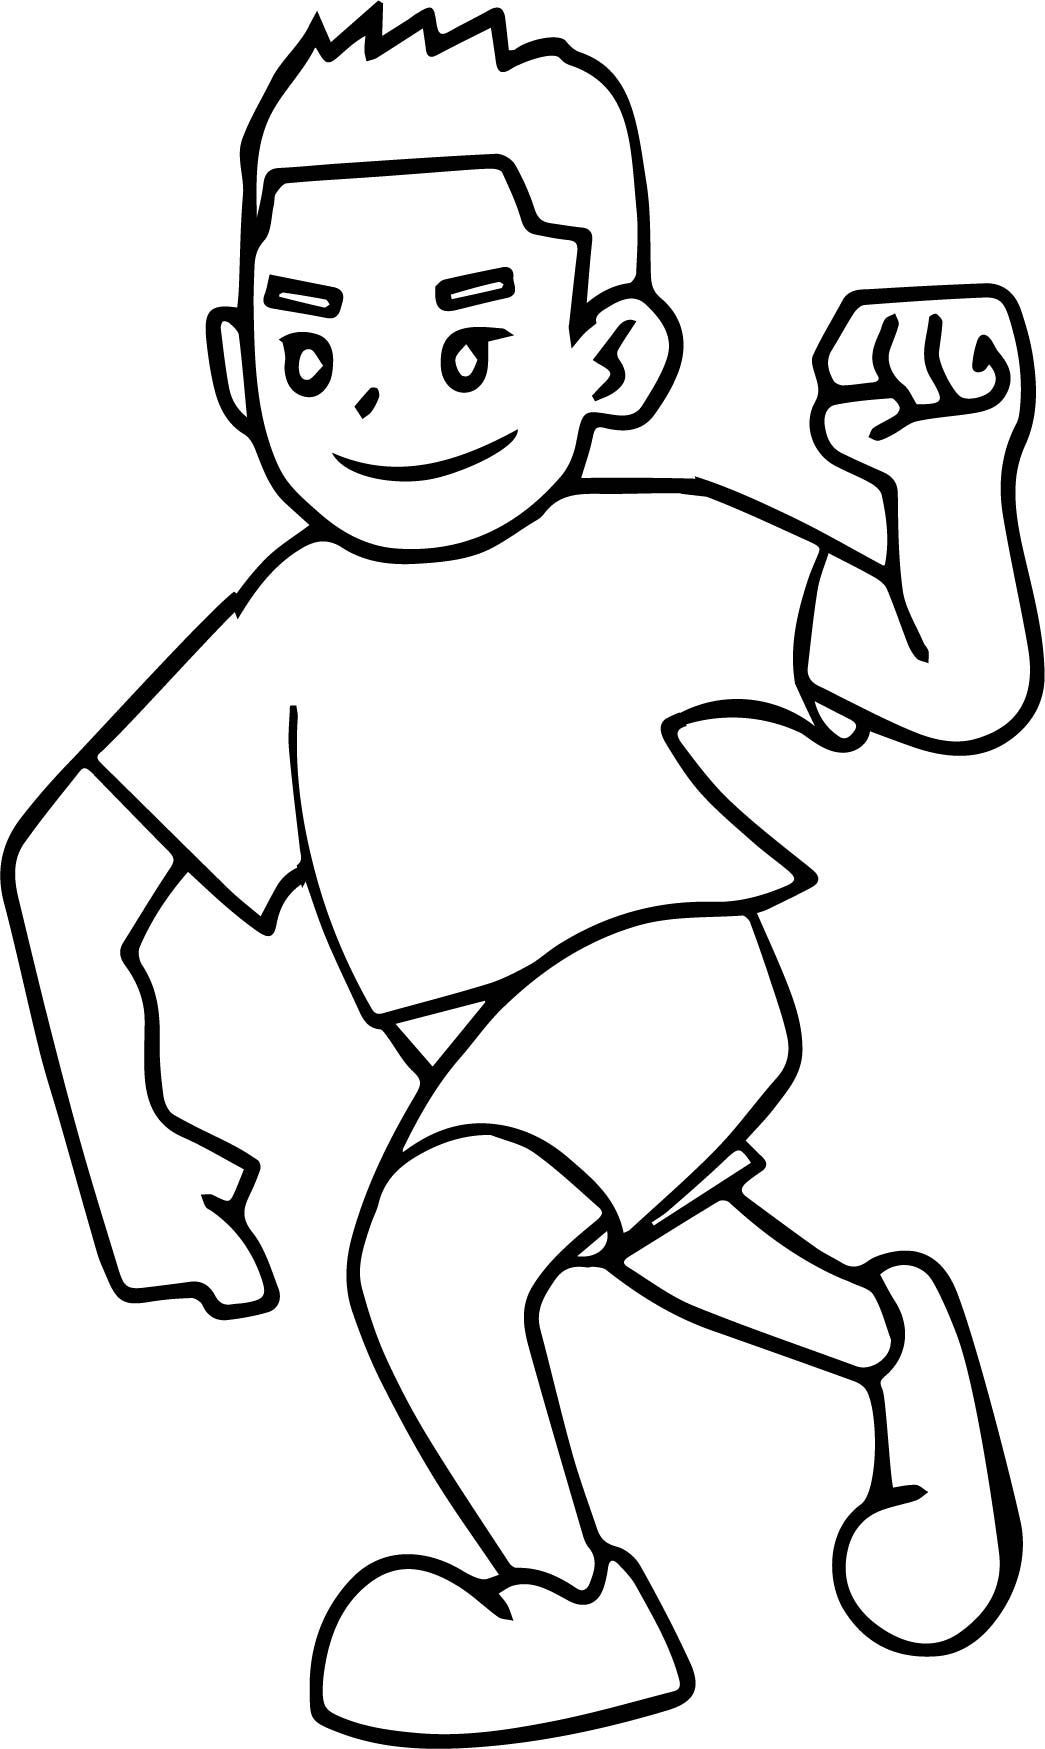 Awesome Running And Winner Boy Coloring Page Coloring Pages For Boys Boy Coloring Coloring Pages